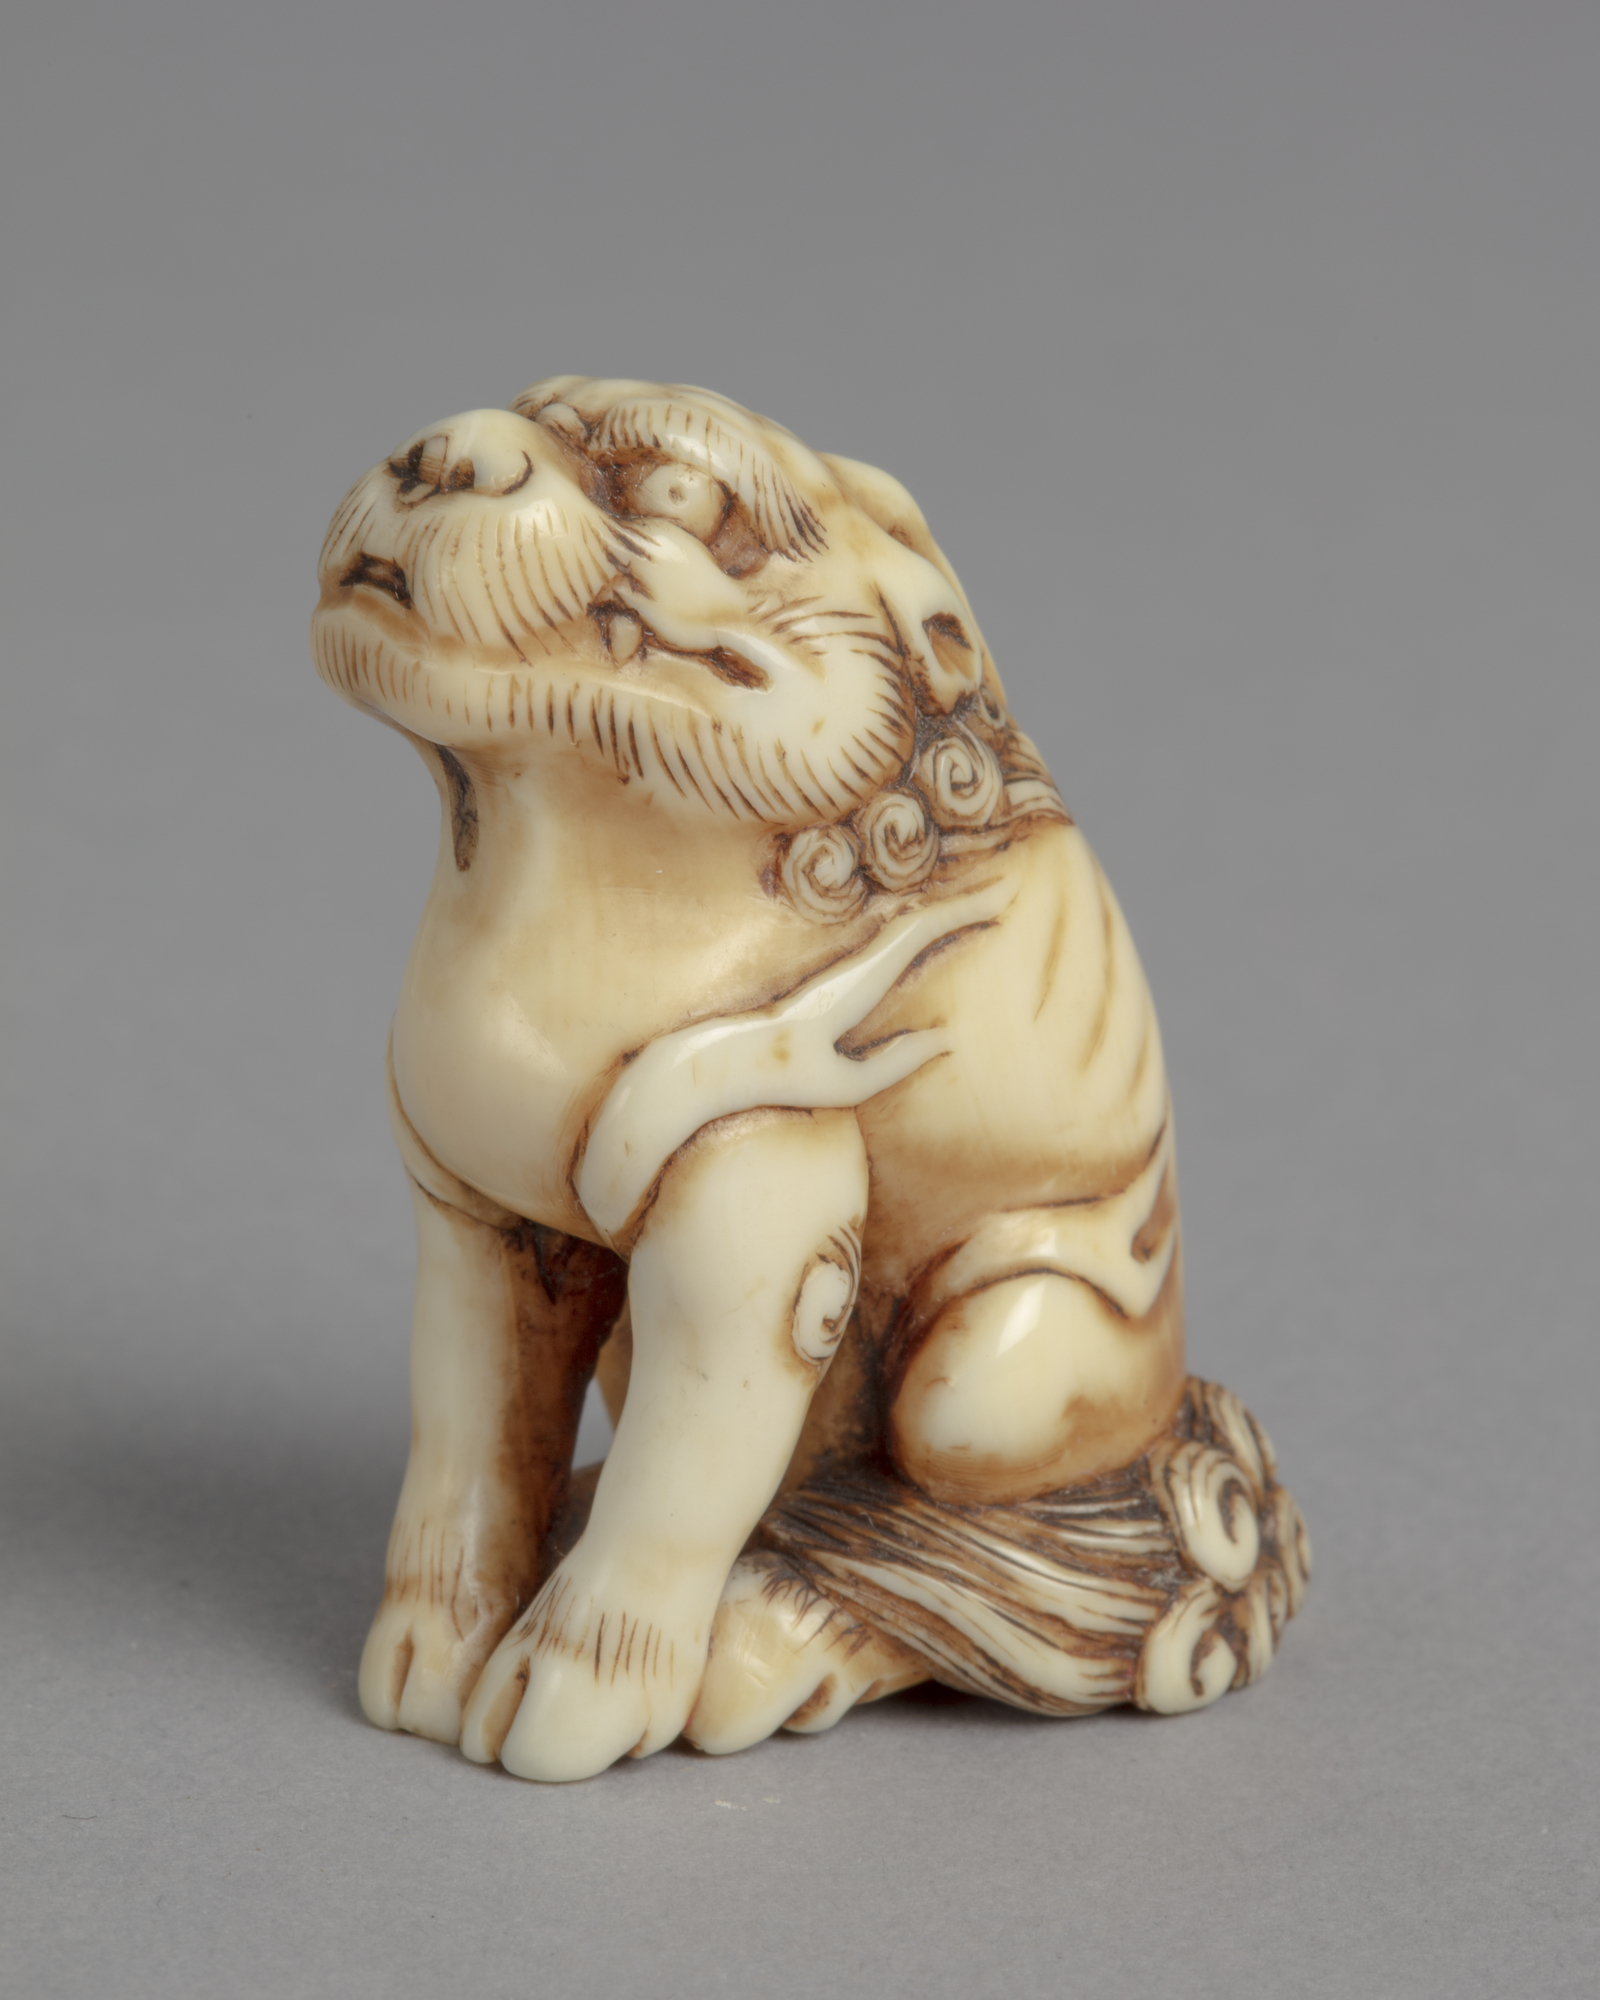 A Japanese ivory netsuke of a seated kirin, a mythical creature that is part dragon, deer, horse, and lion.